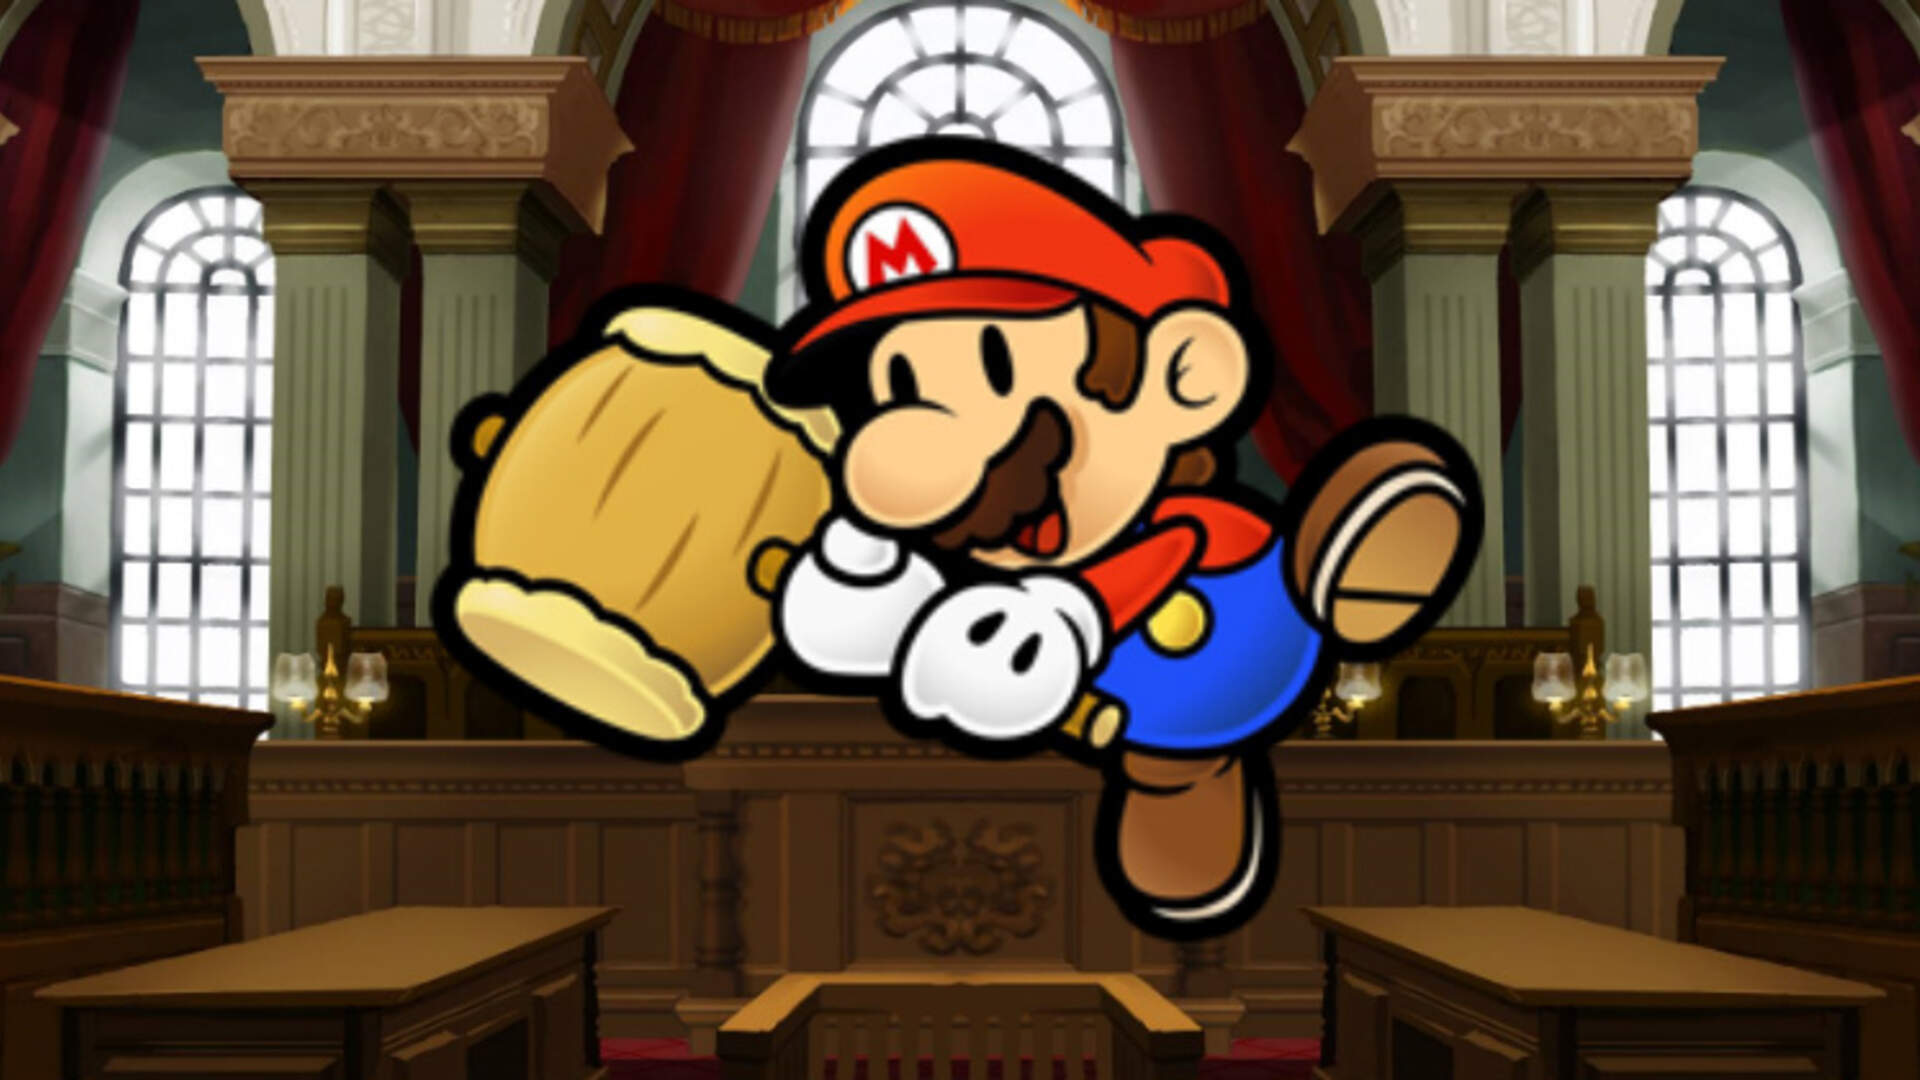 Nintendo Delivers the Legal Smackdown to 562 Fan Games